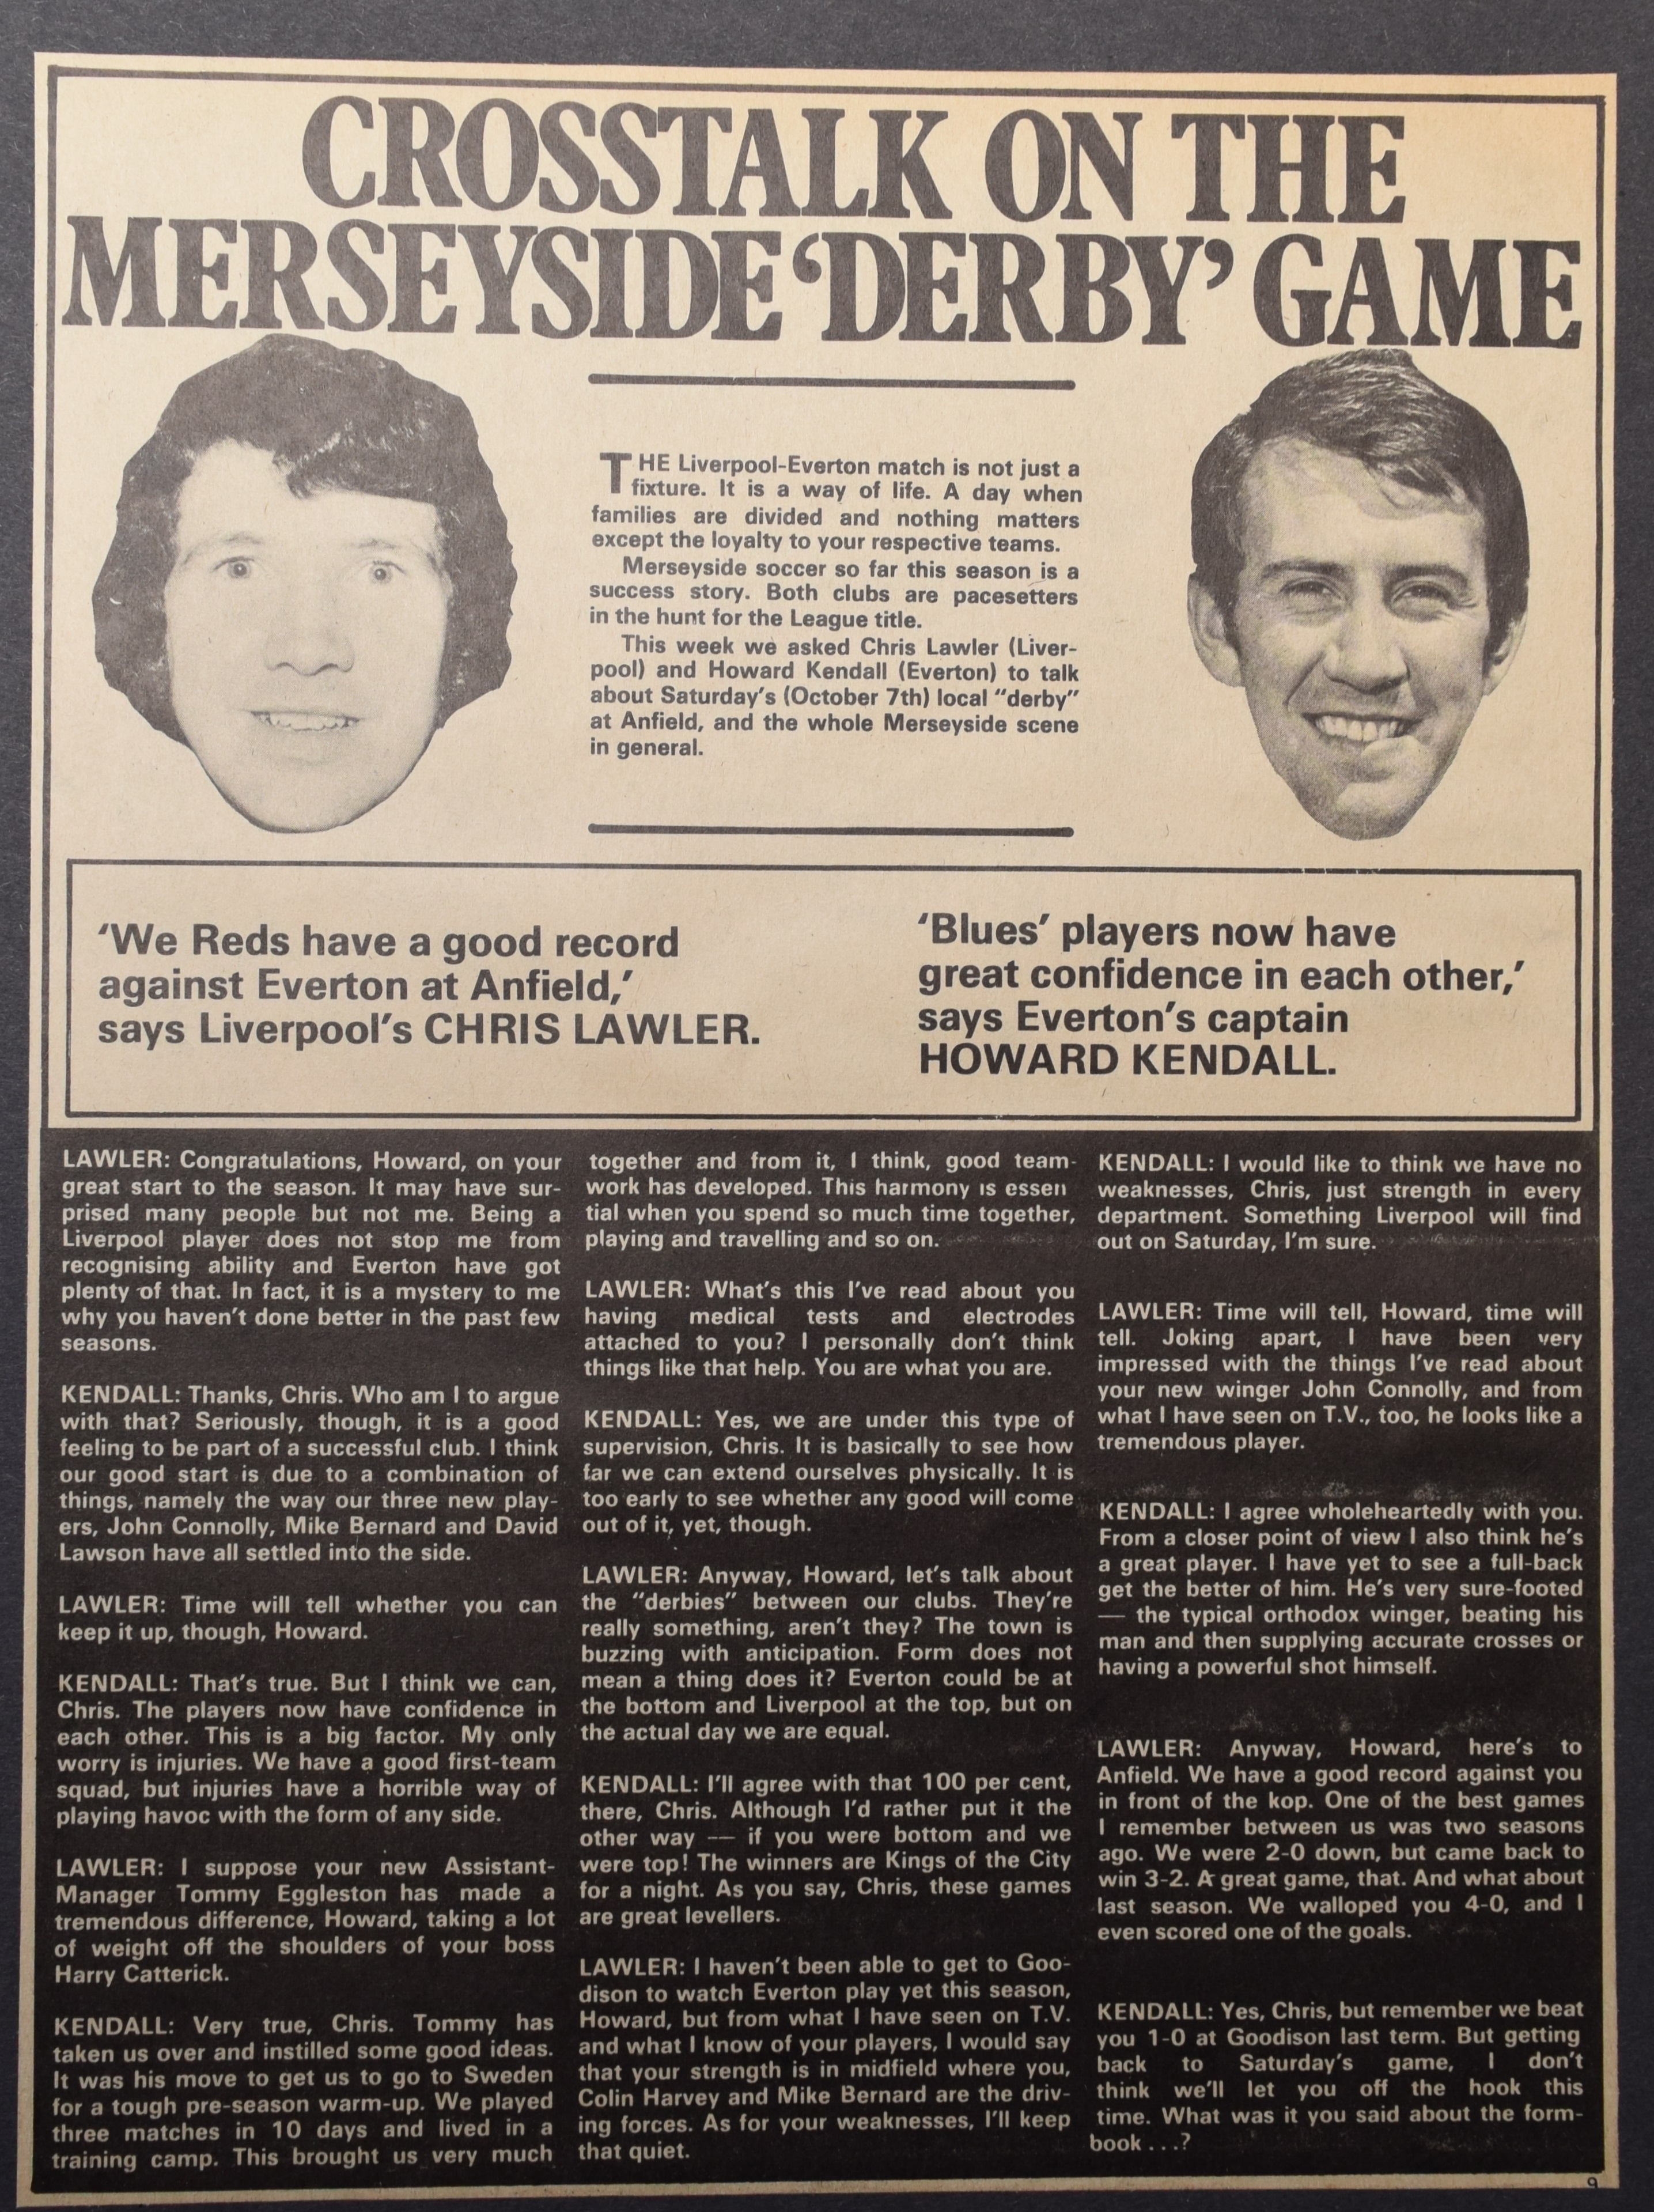 Crosstalk on the Merseyside derby game - 6 October 1972